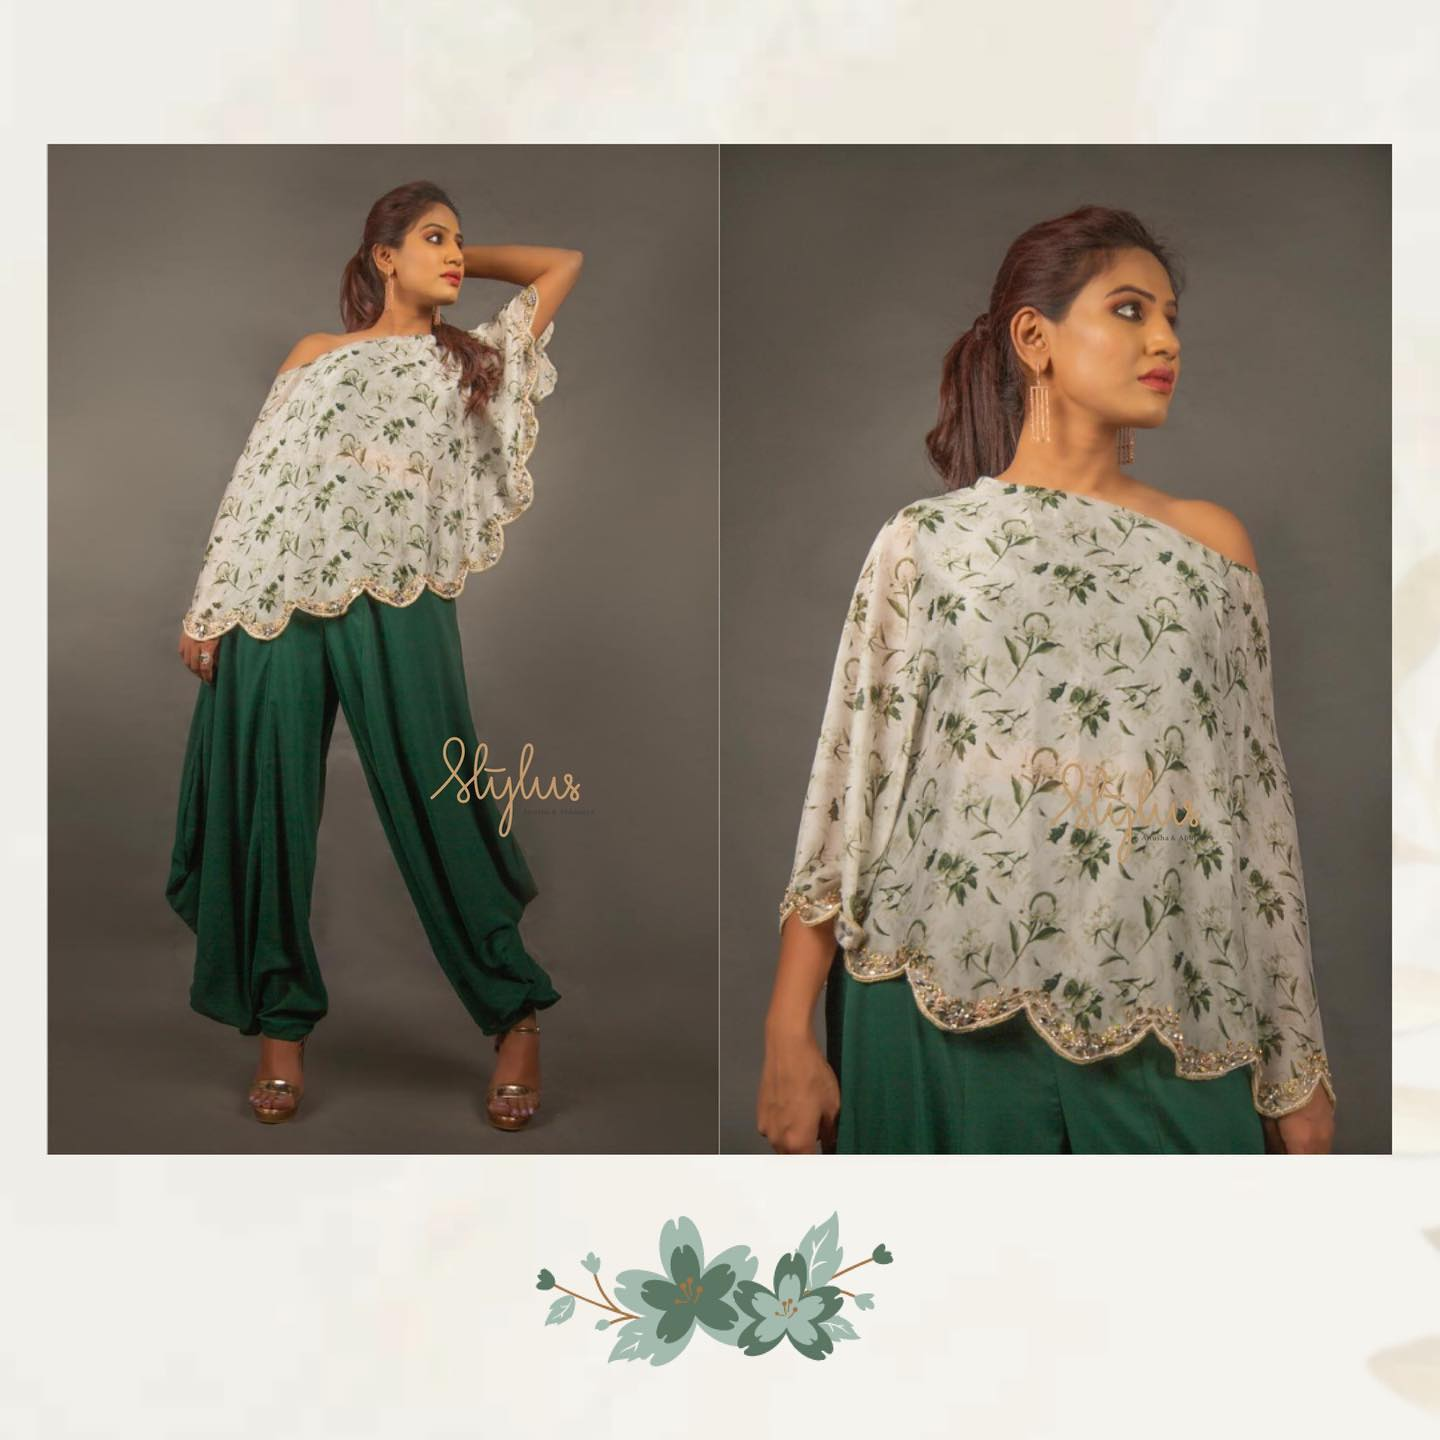 Floral collection couldn't get any better! Look at the amalgamation of shades of green in a designer piece with a cape! Such a subtle yet bold outfit. Fashionable and chiq. 2021-05-20